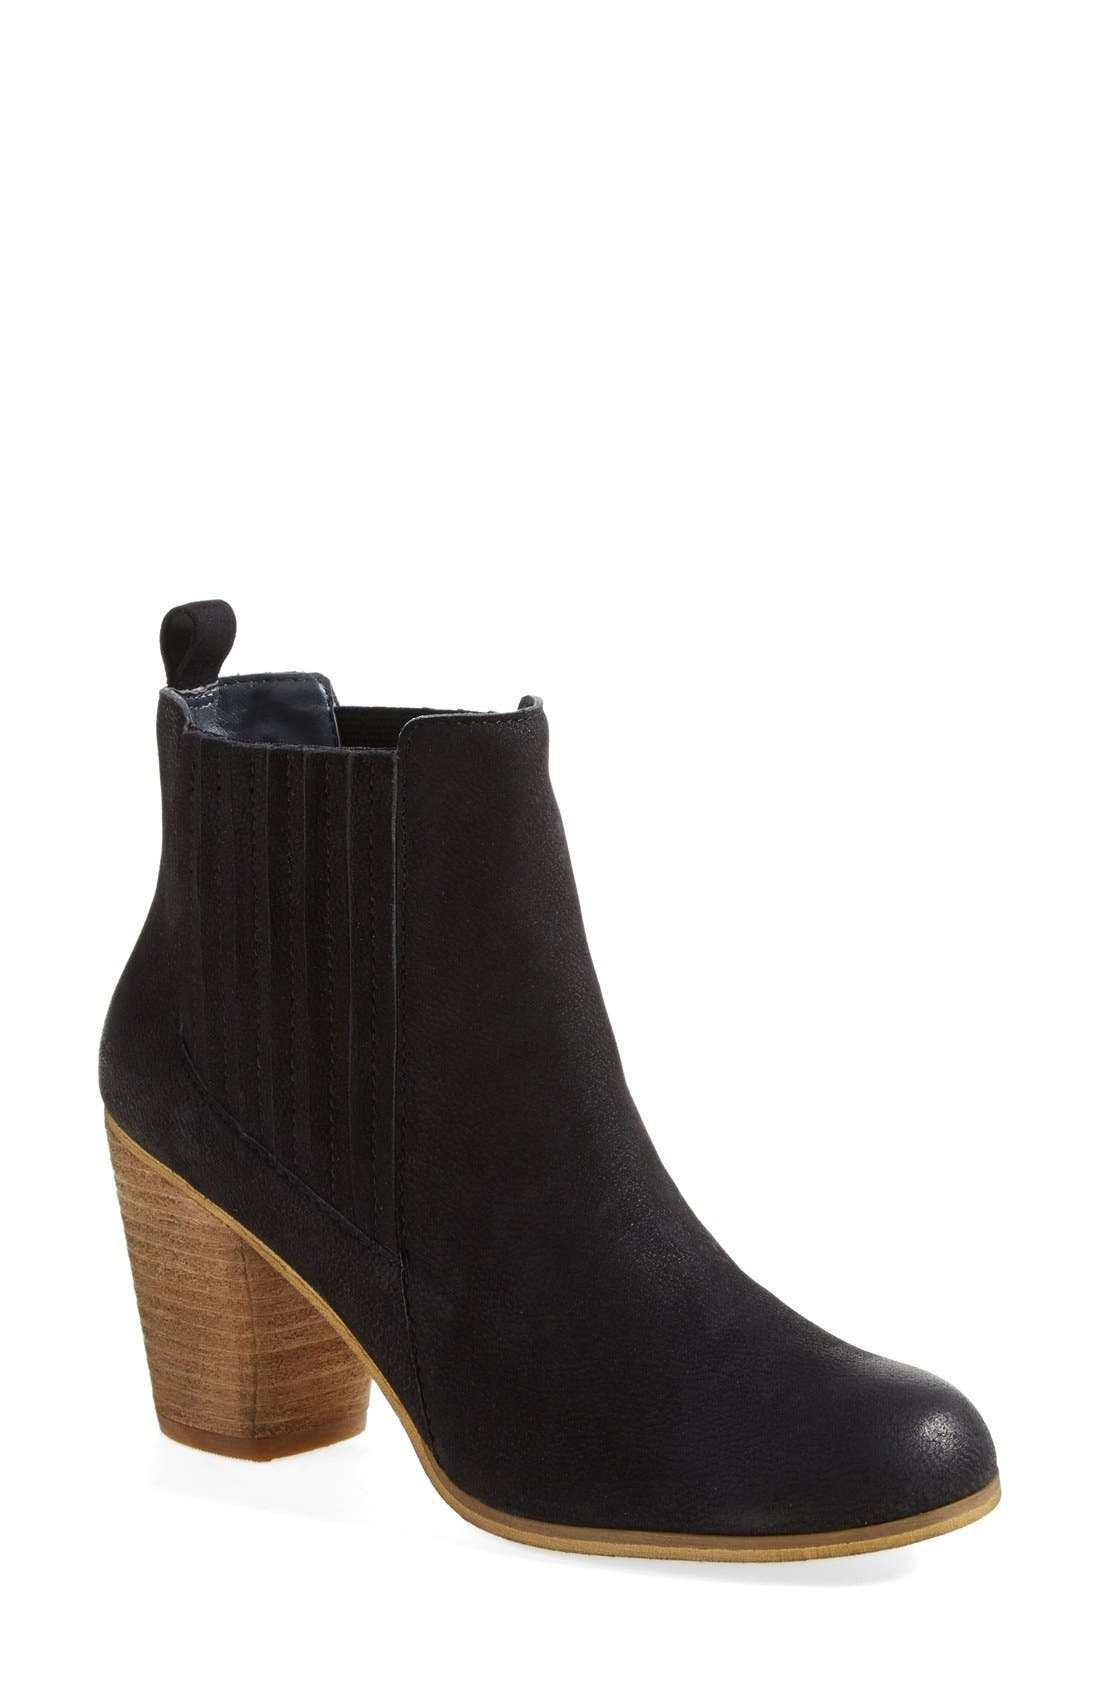 'Andover' Bootie,                             Main thumbnail 1, color,                             001